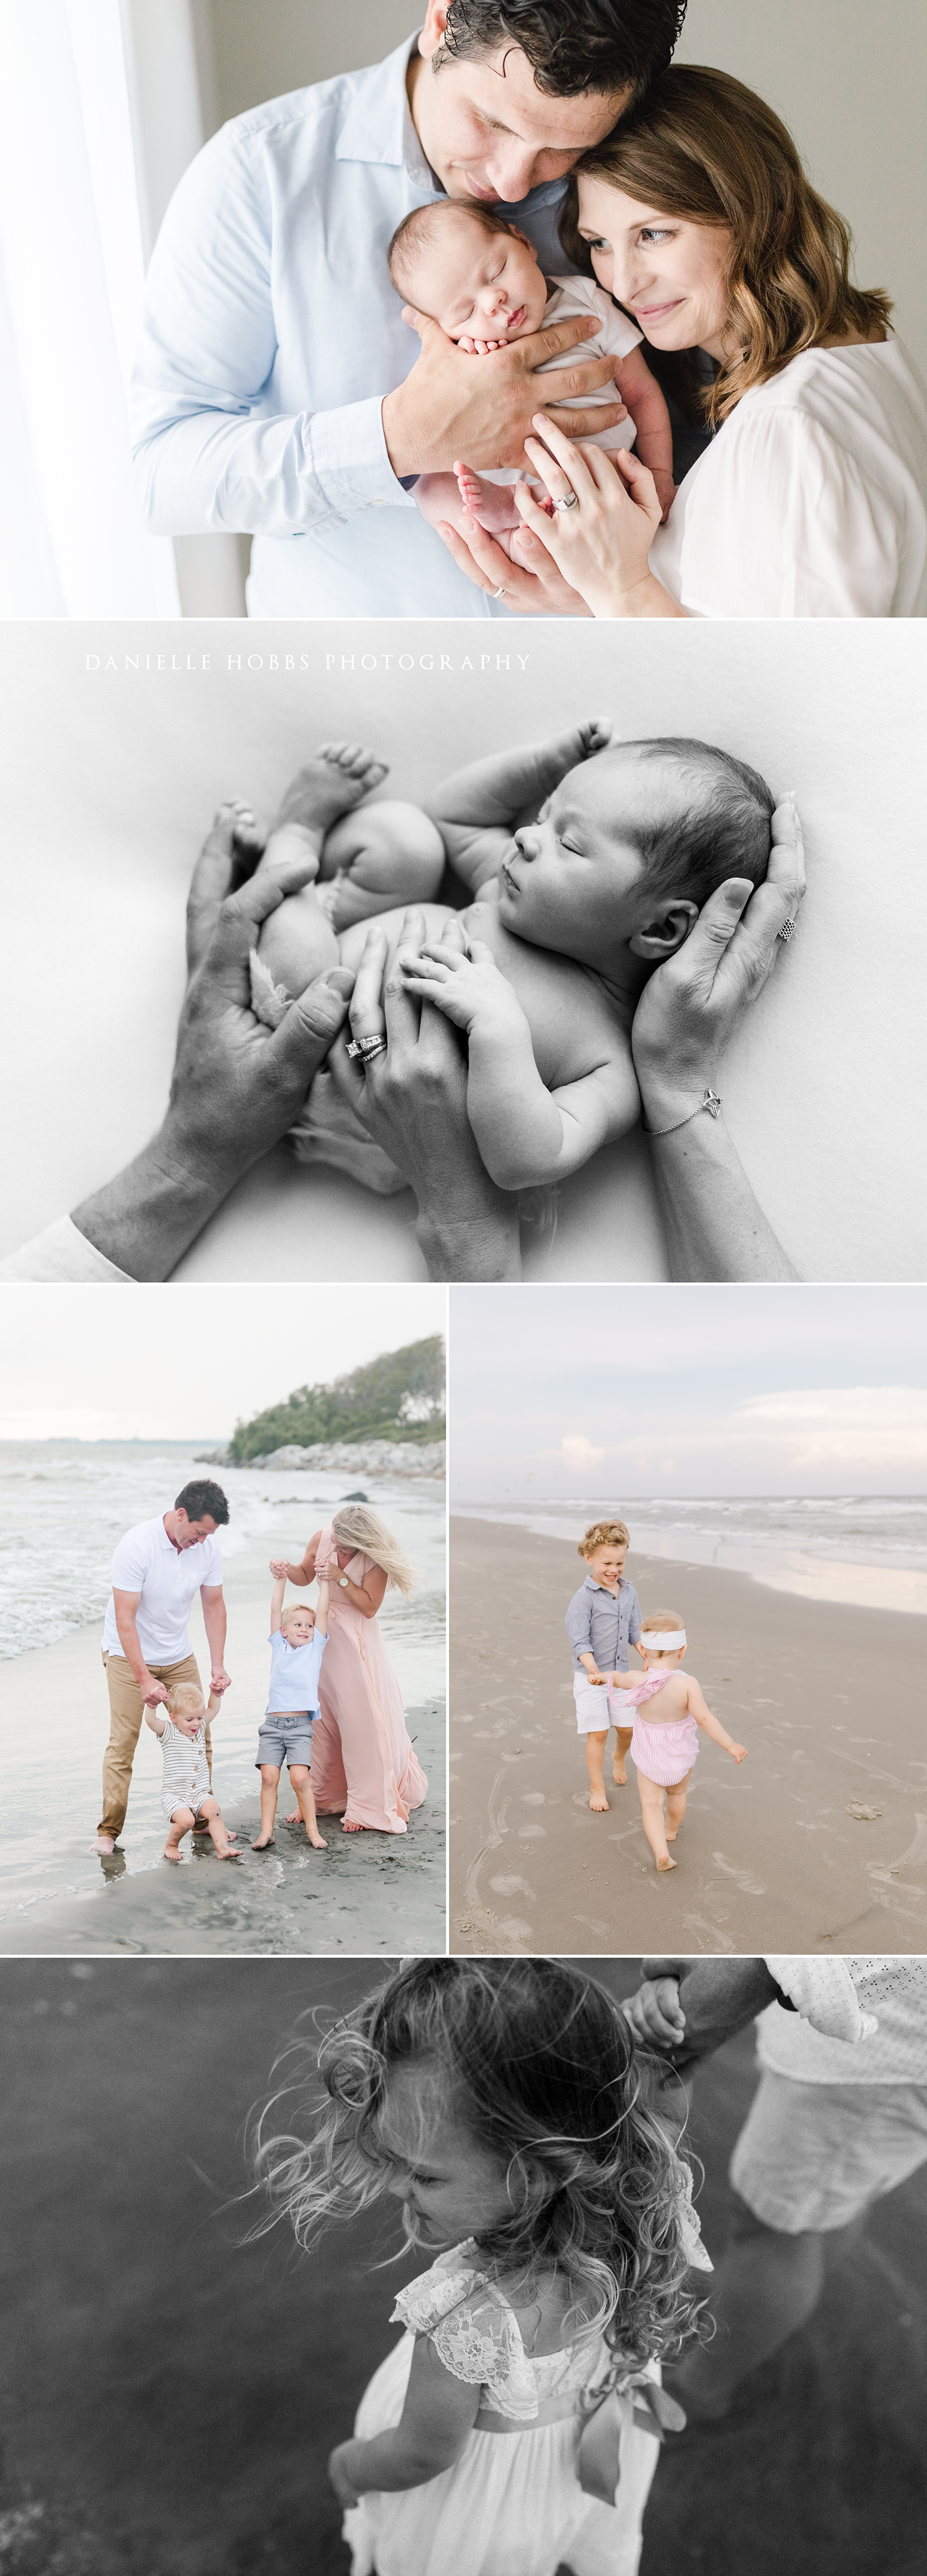 ACR Presets used to edit family and newborn images